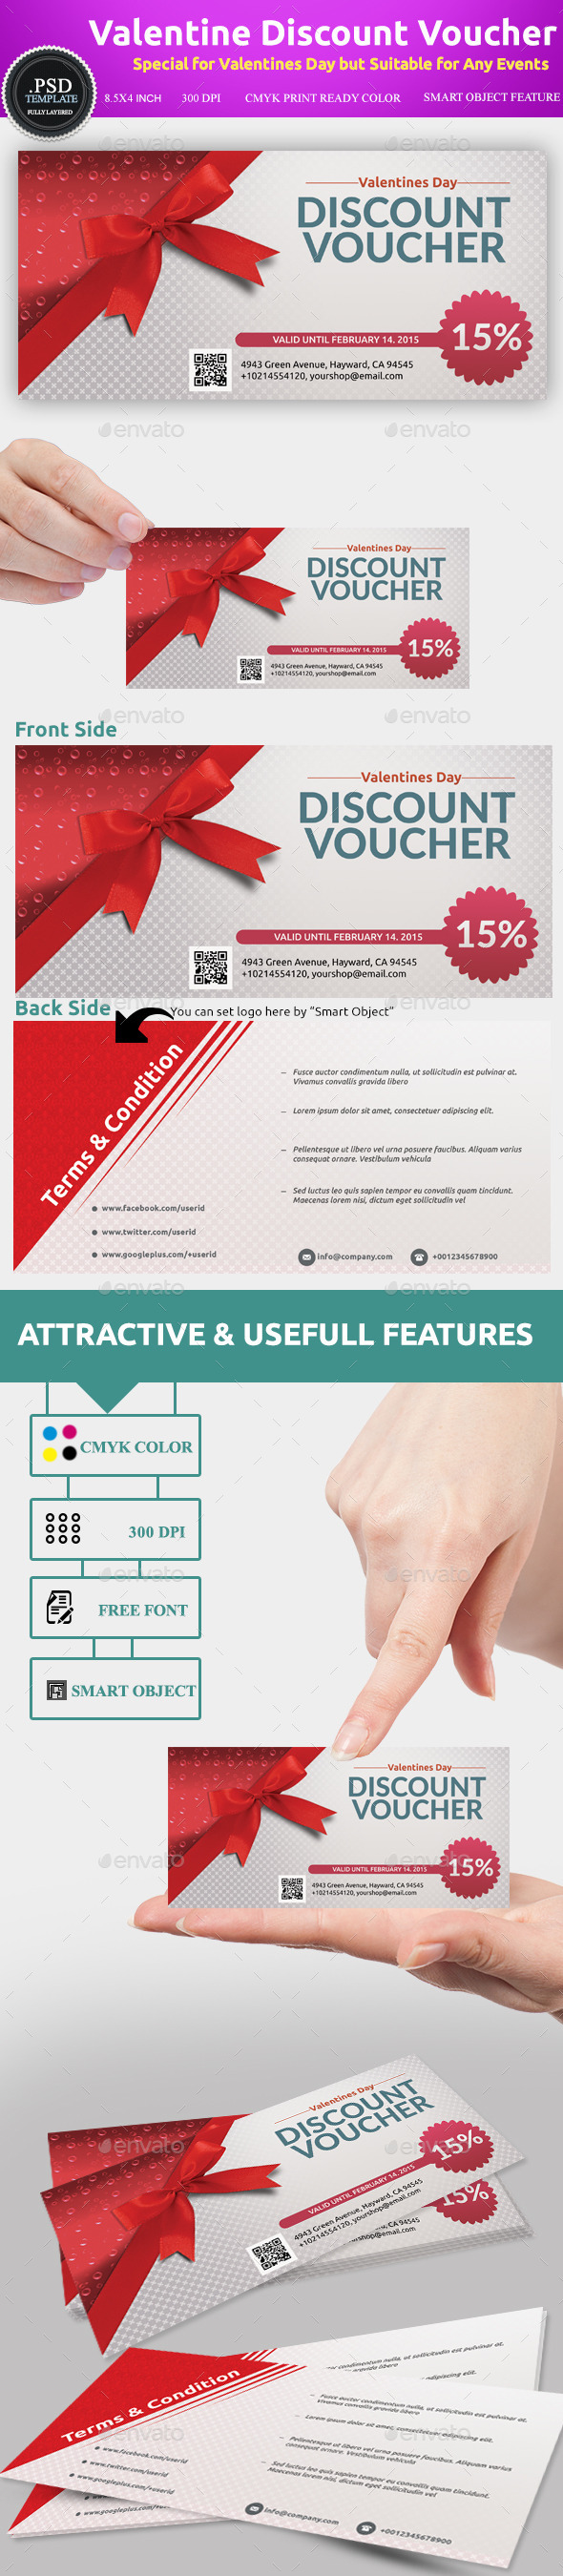 Valentines Discount Voucher Template By Utpal443 | GraphicRiver  Coupons Design Templates